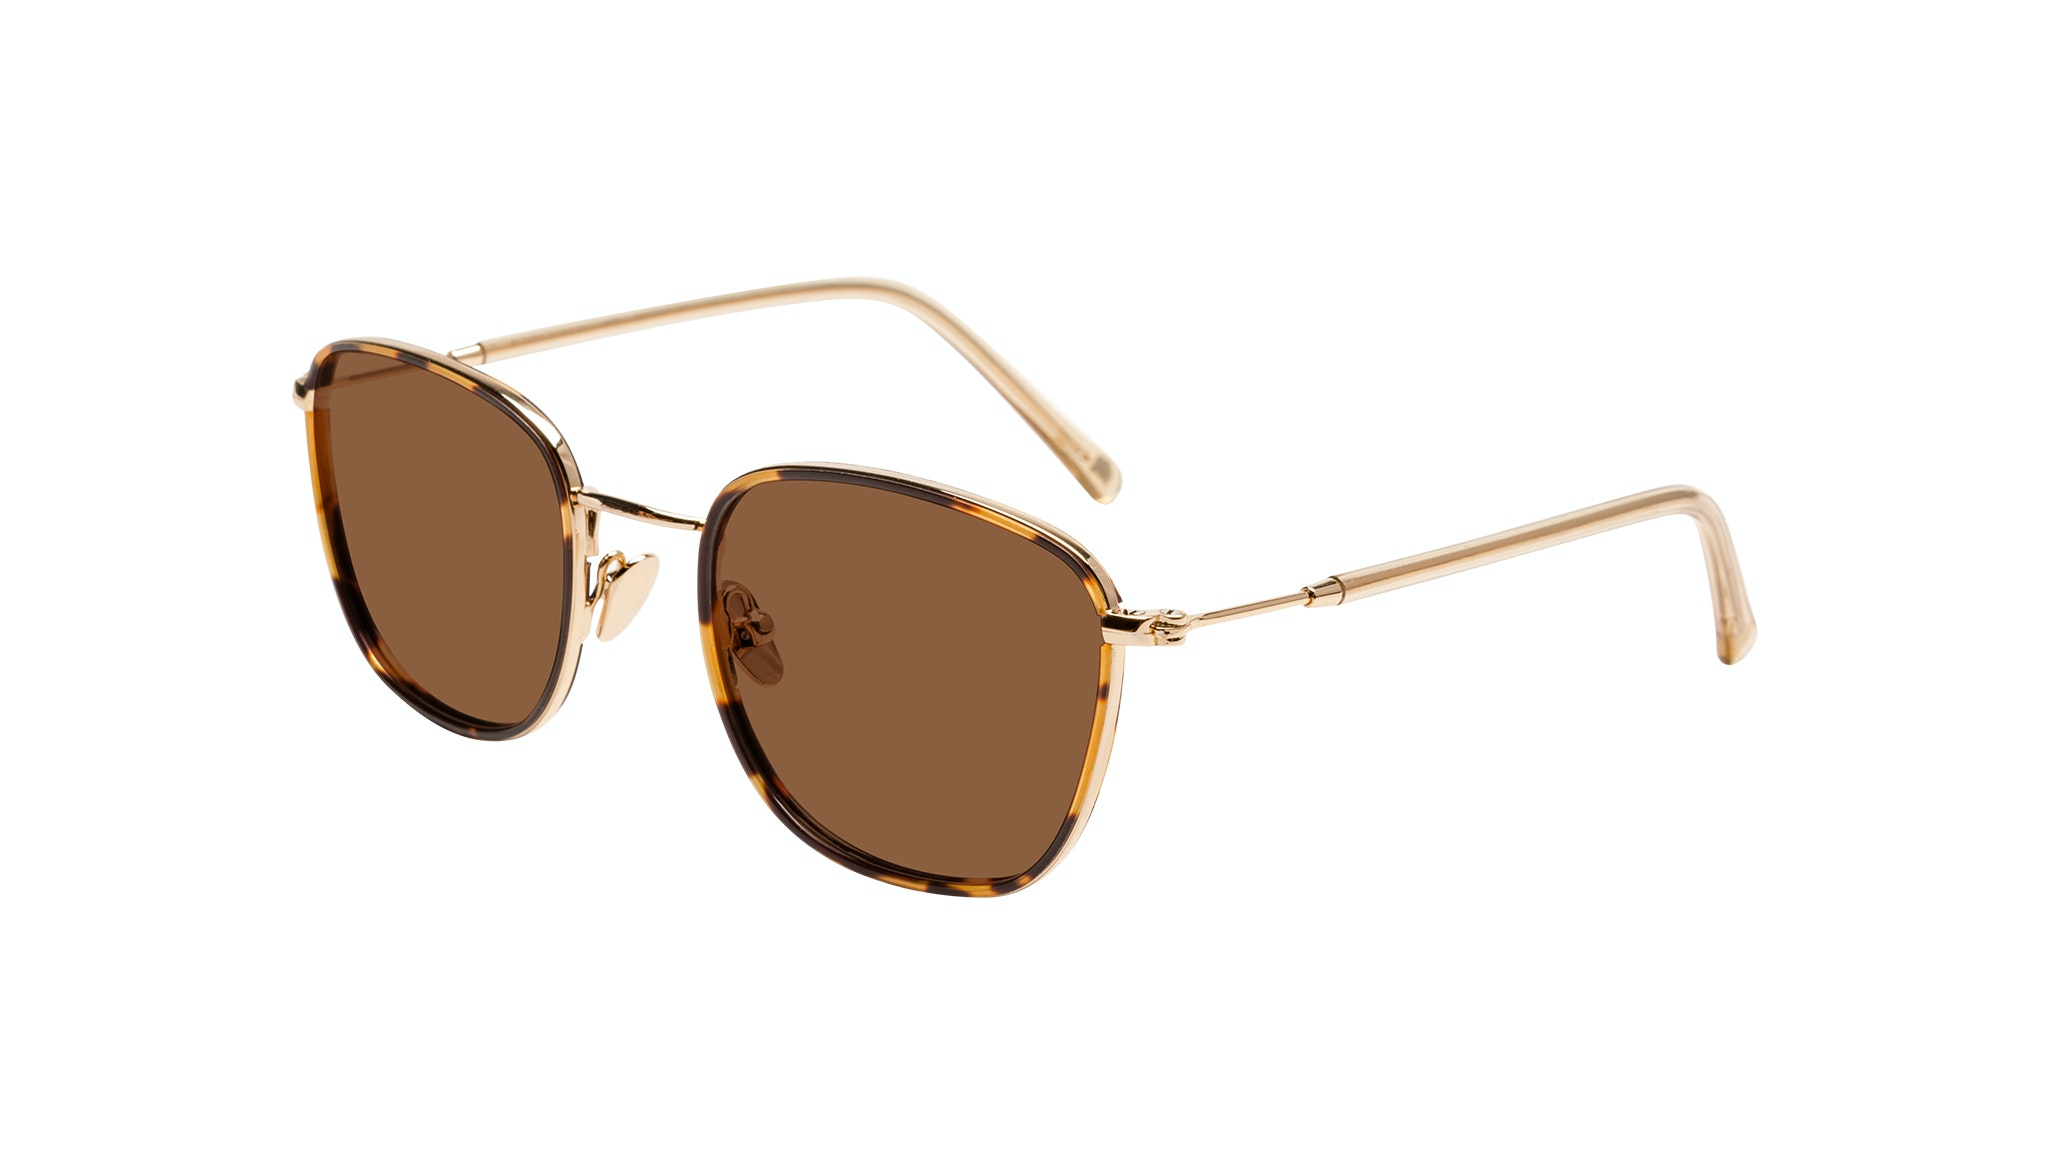 Affordable Fashion Glasses Rectangle Sunglasses Women Lawrence Gypsy Tilt